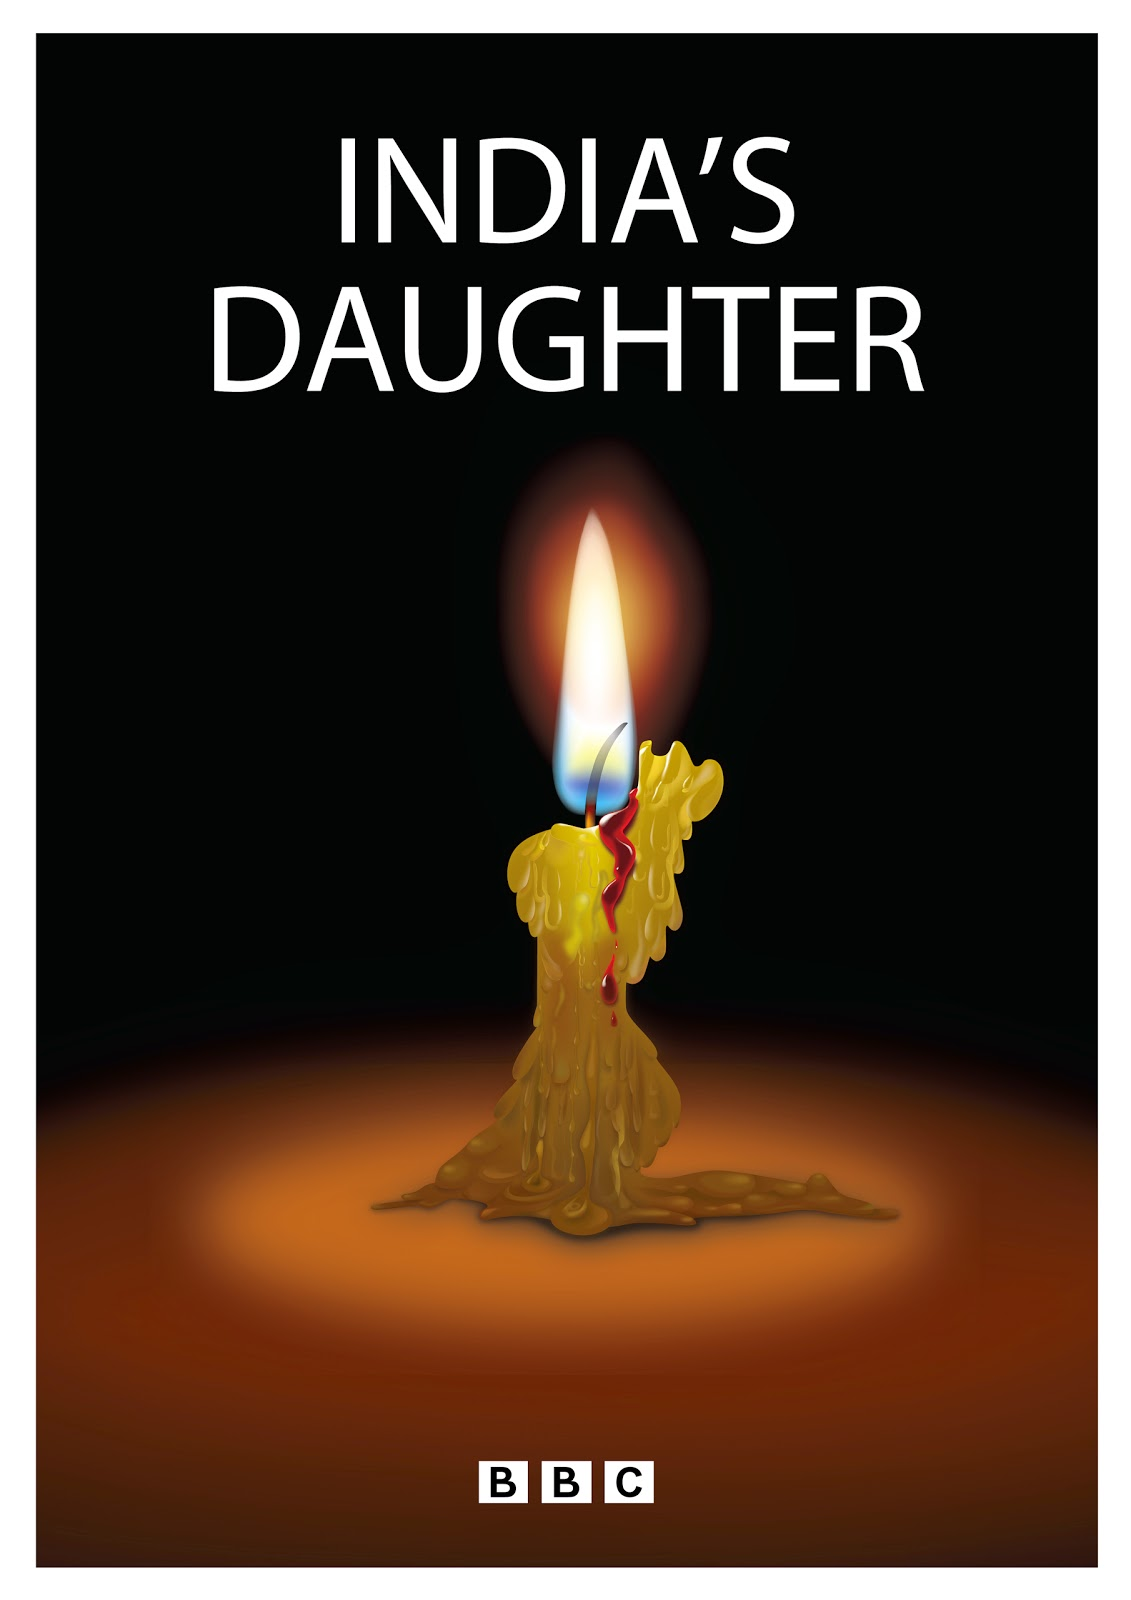 Poster design documentary - Subject Design A Poster For India S Daughter Documentary